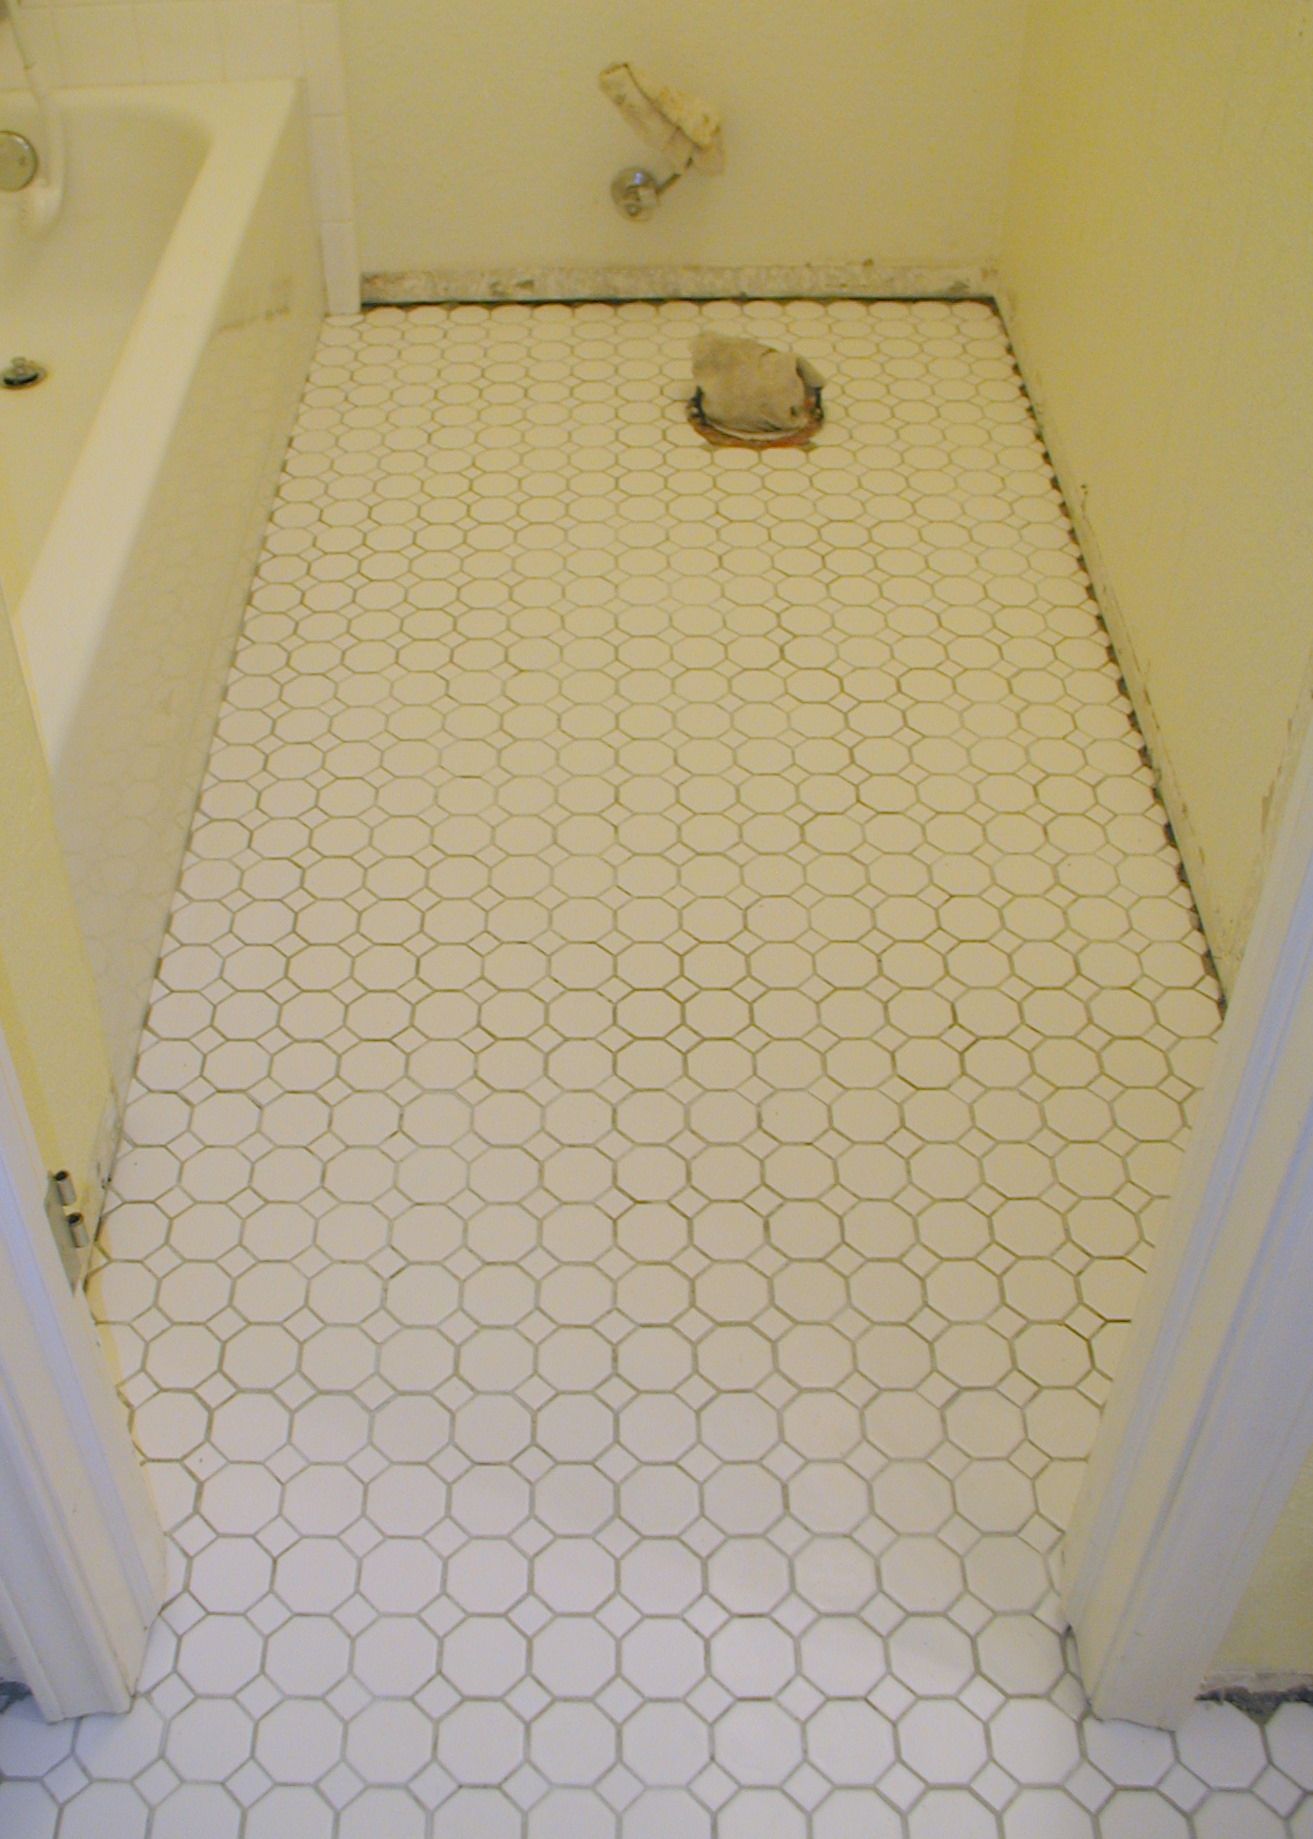 Excellent Bathroom Floor Tile Is Available  Similar To The Laminate Material That Covered Kitchen Countertops For A Generation Or Two, The Tiles Dont Significantly Raise The Height Of The Existing Floor, Which Makes It Easier To Plan Transitions From